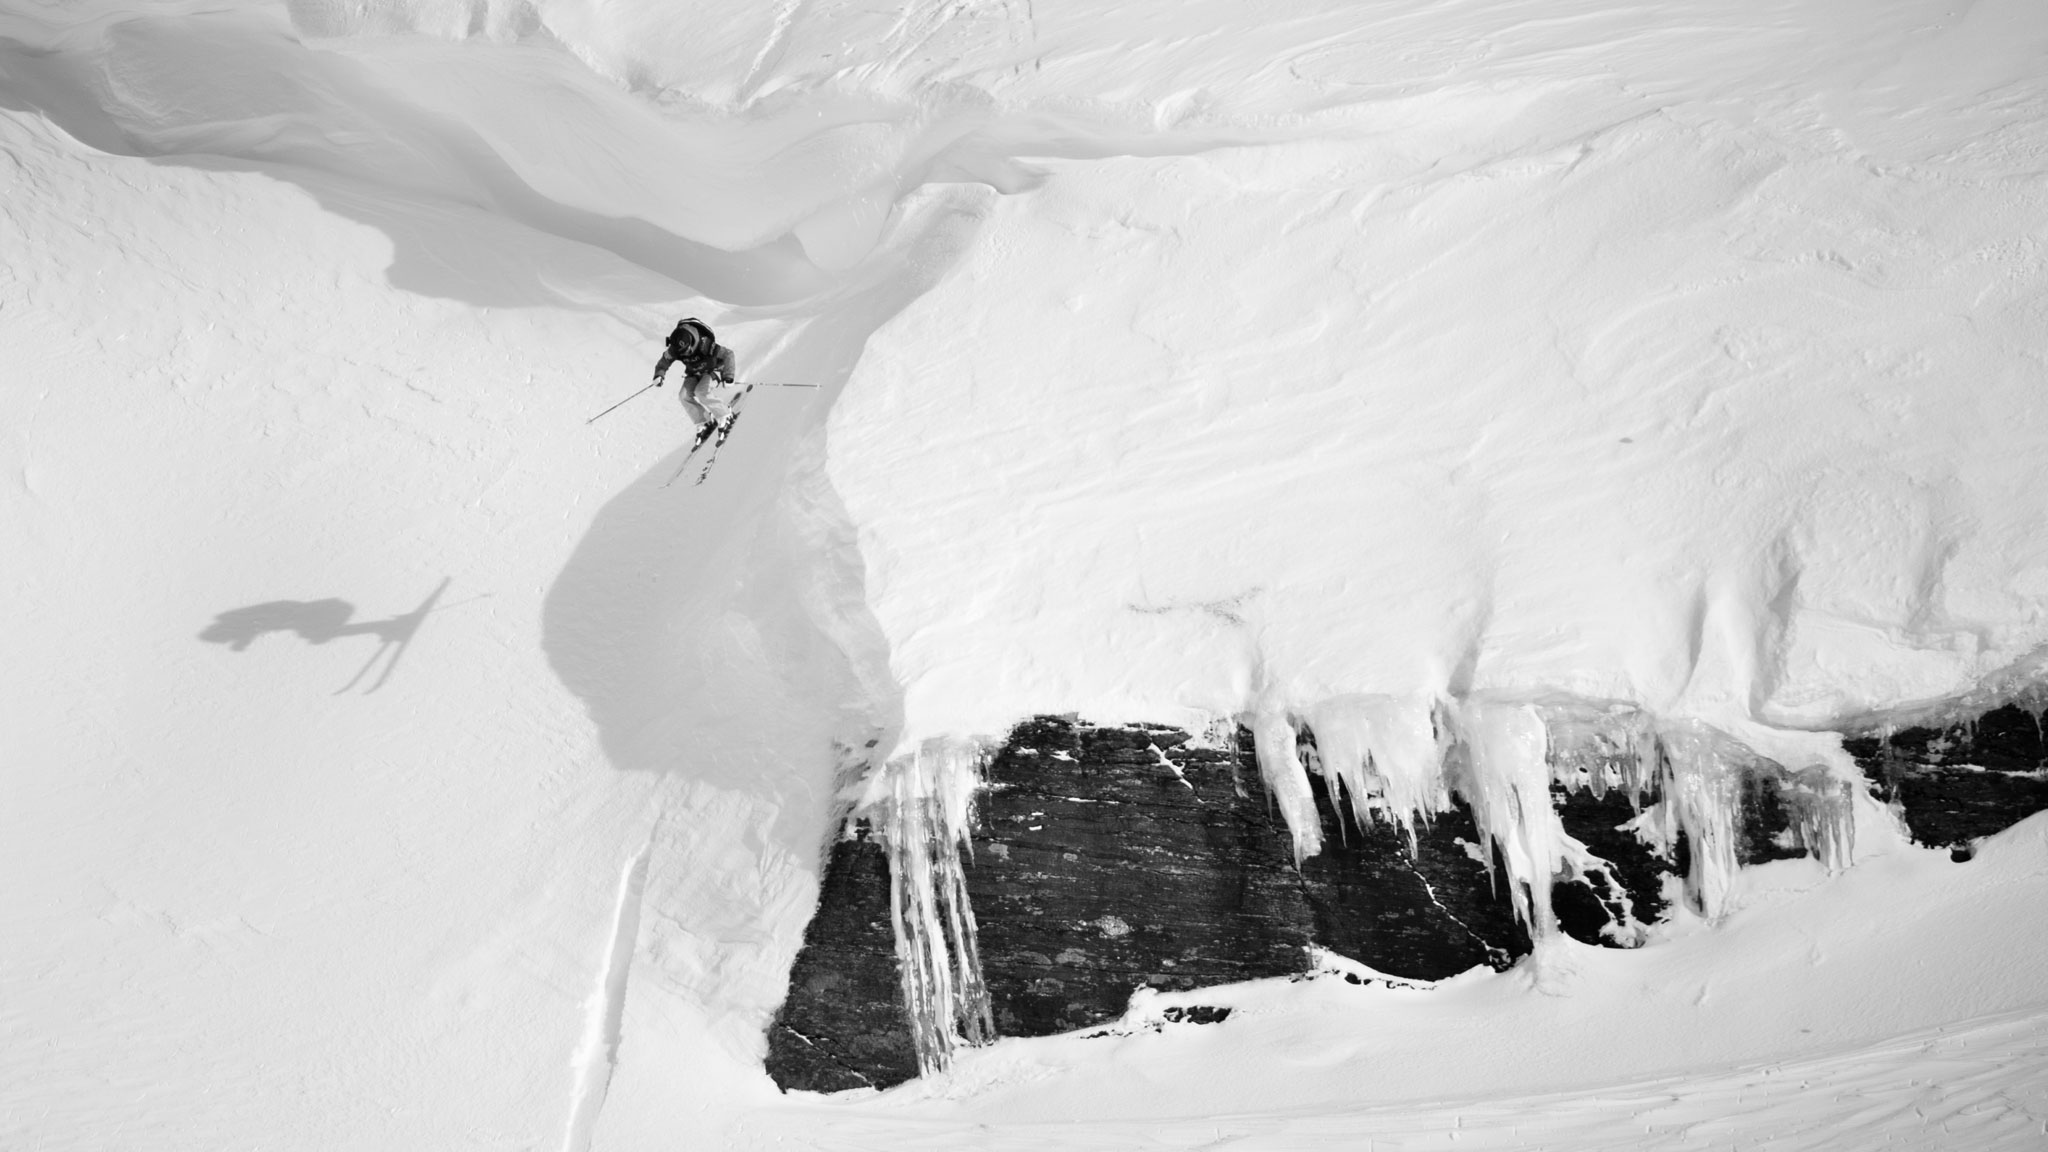 Jackie Paaso competing in a Freeride World Tour contest in Rldal, Norway.